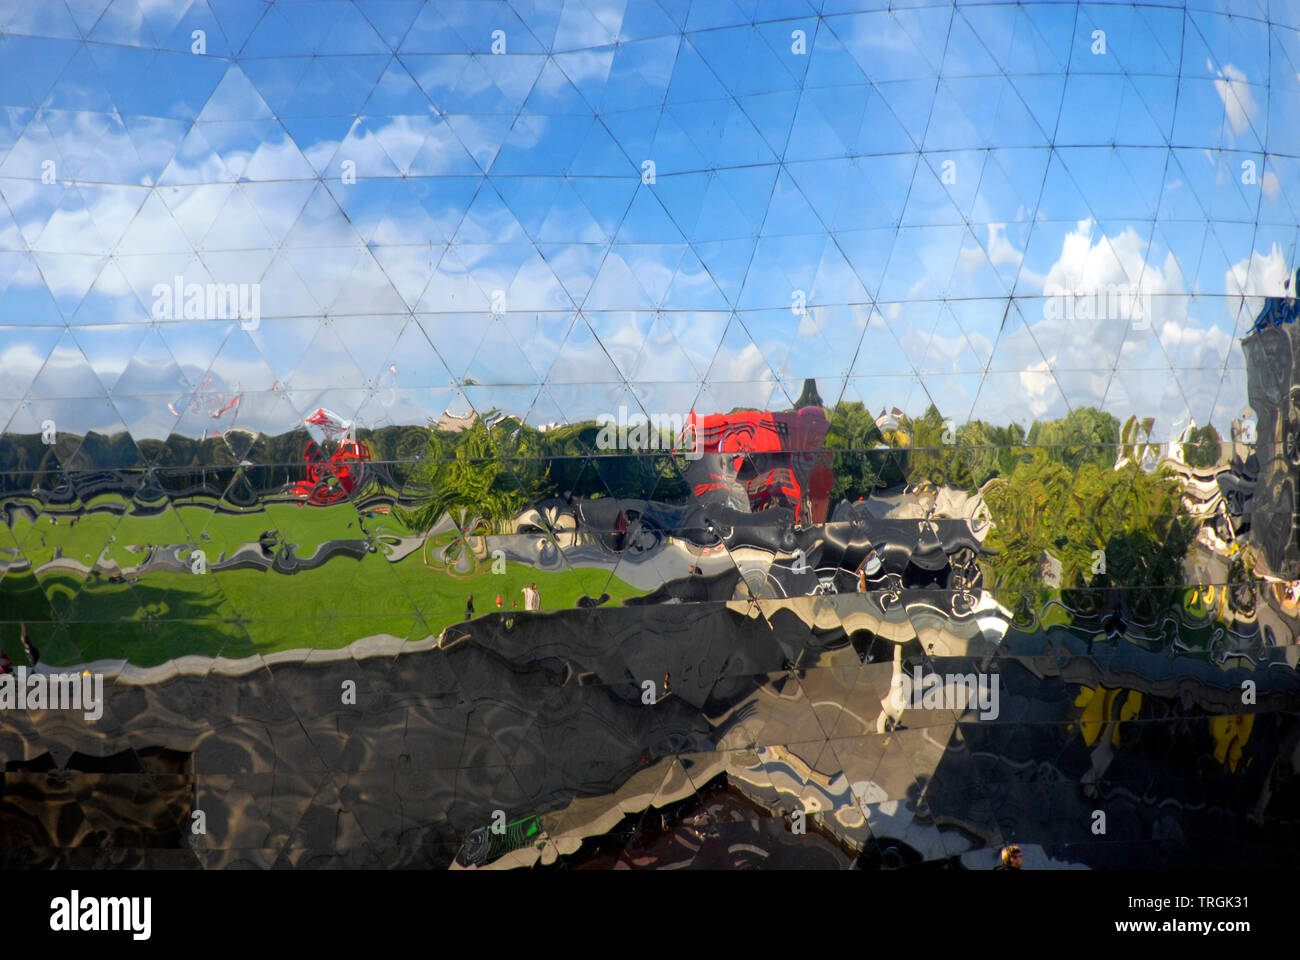 Reflections in a large geodesic dome near open area, Paris, France - Stock Image